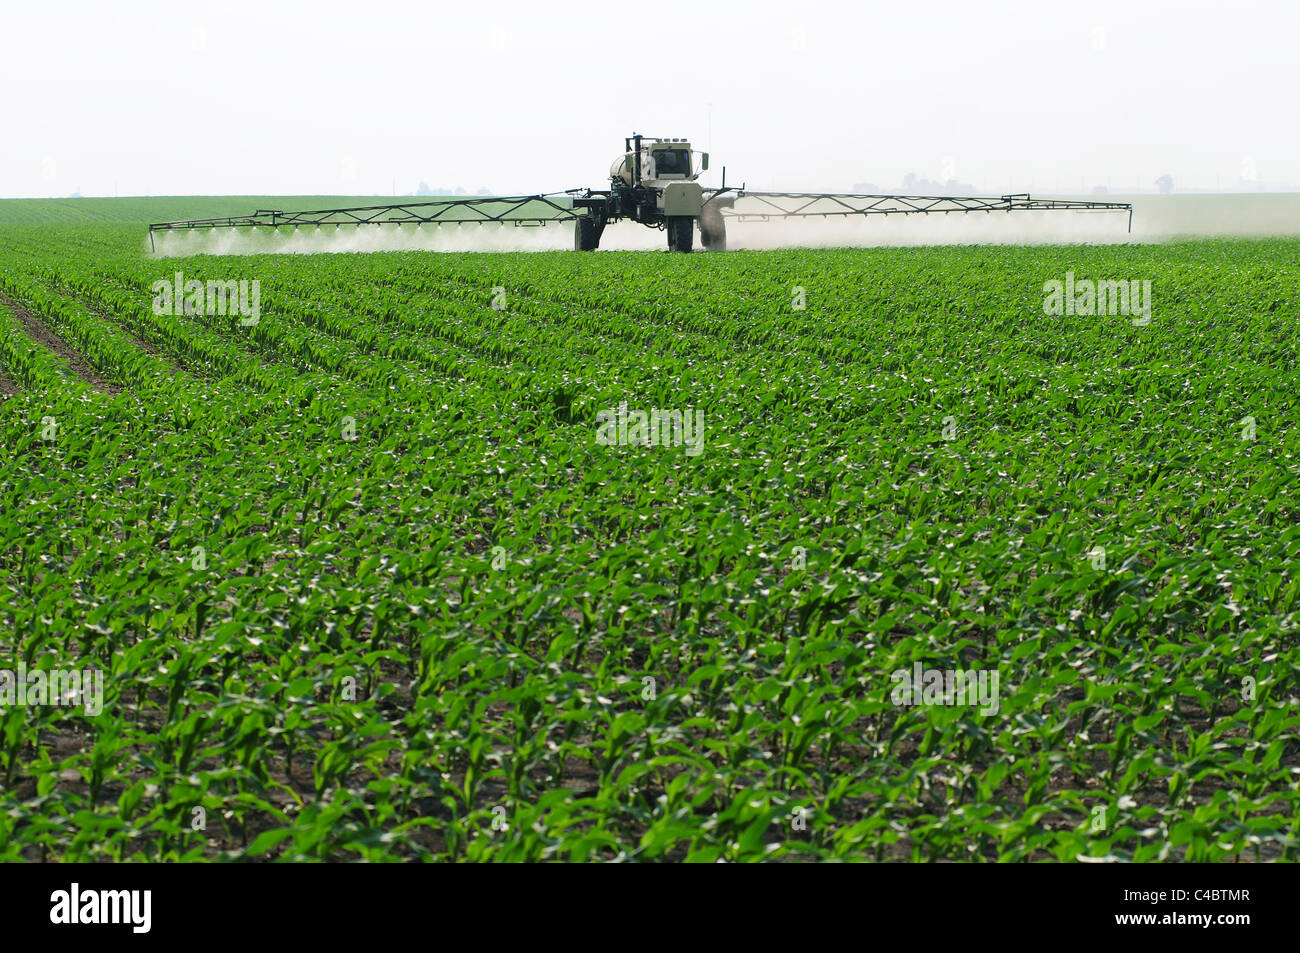 A self propelled crop sprayer treating a corn field with insecticide or herbicide - Stock Image